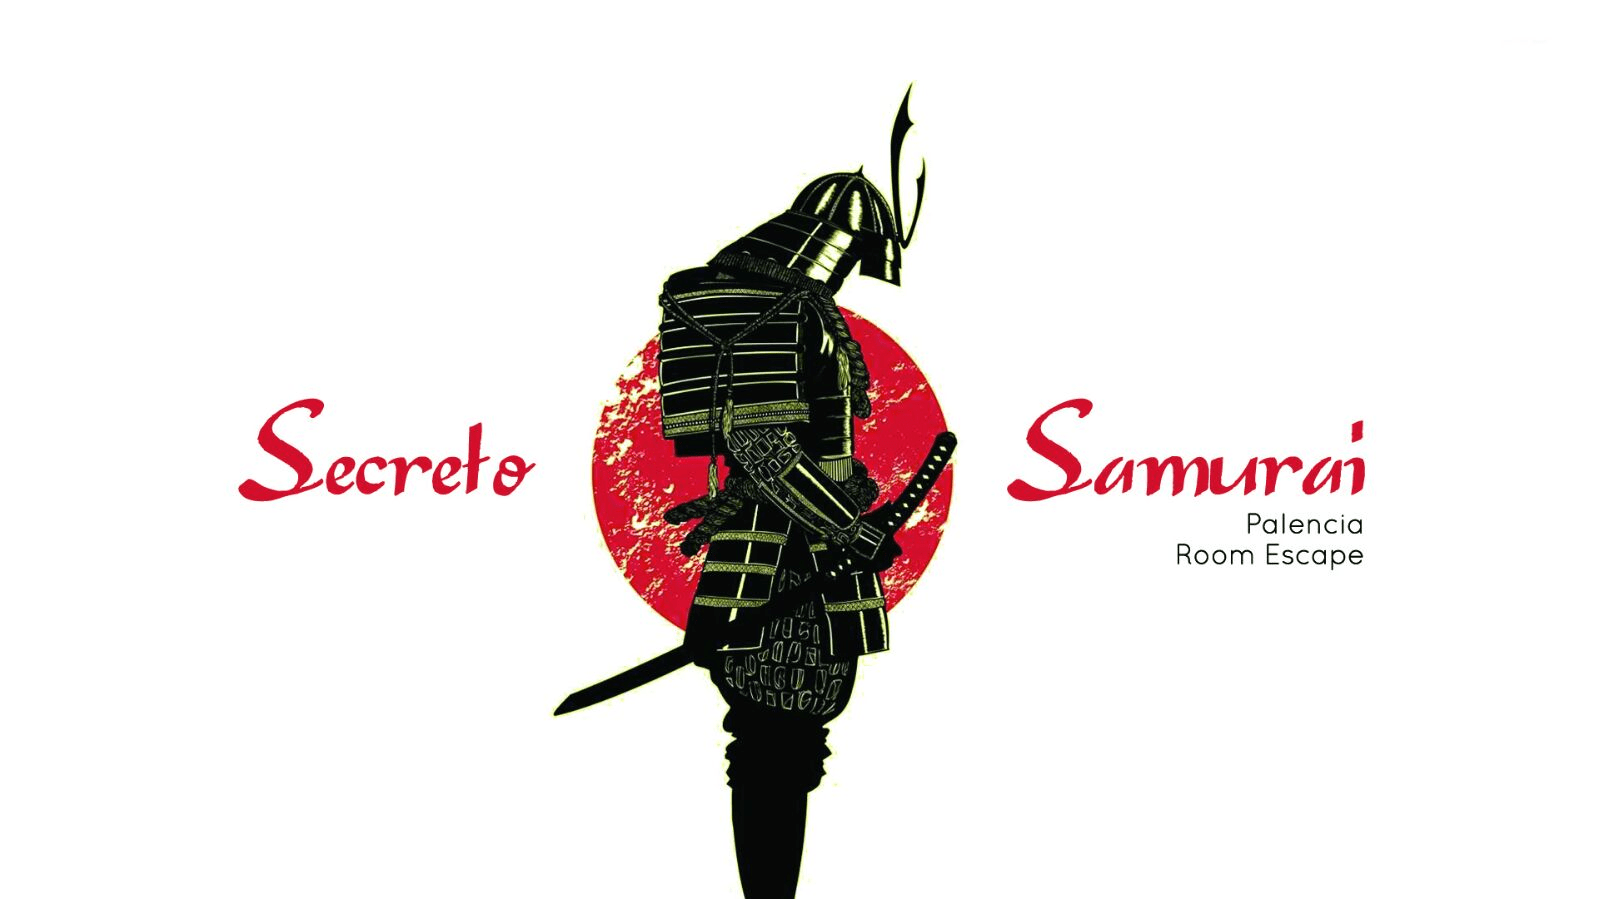 Buffet Libre Japones Samurai Cuenca Escape Rooms En Palencia Escapistas Club